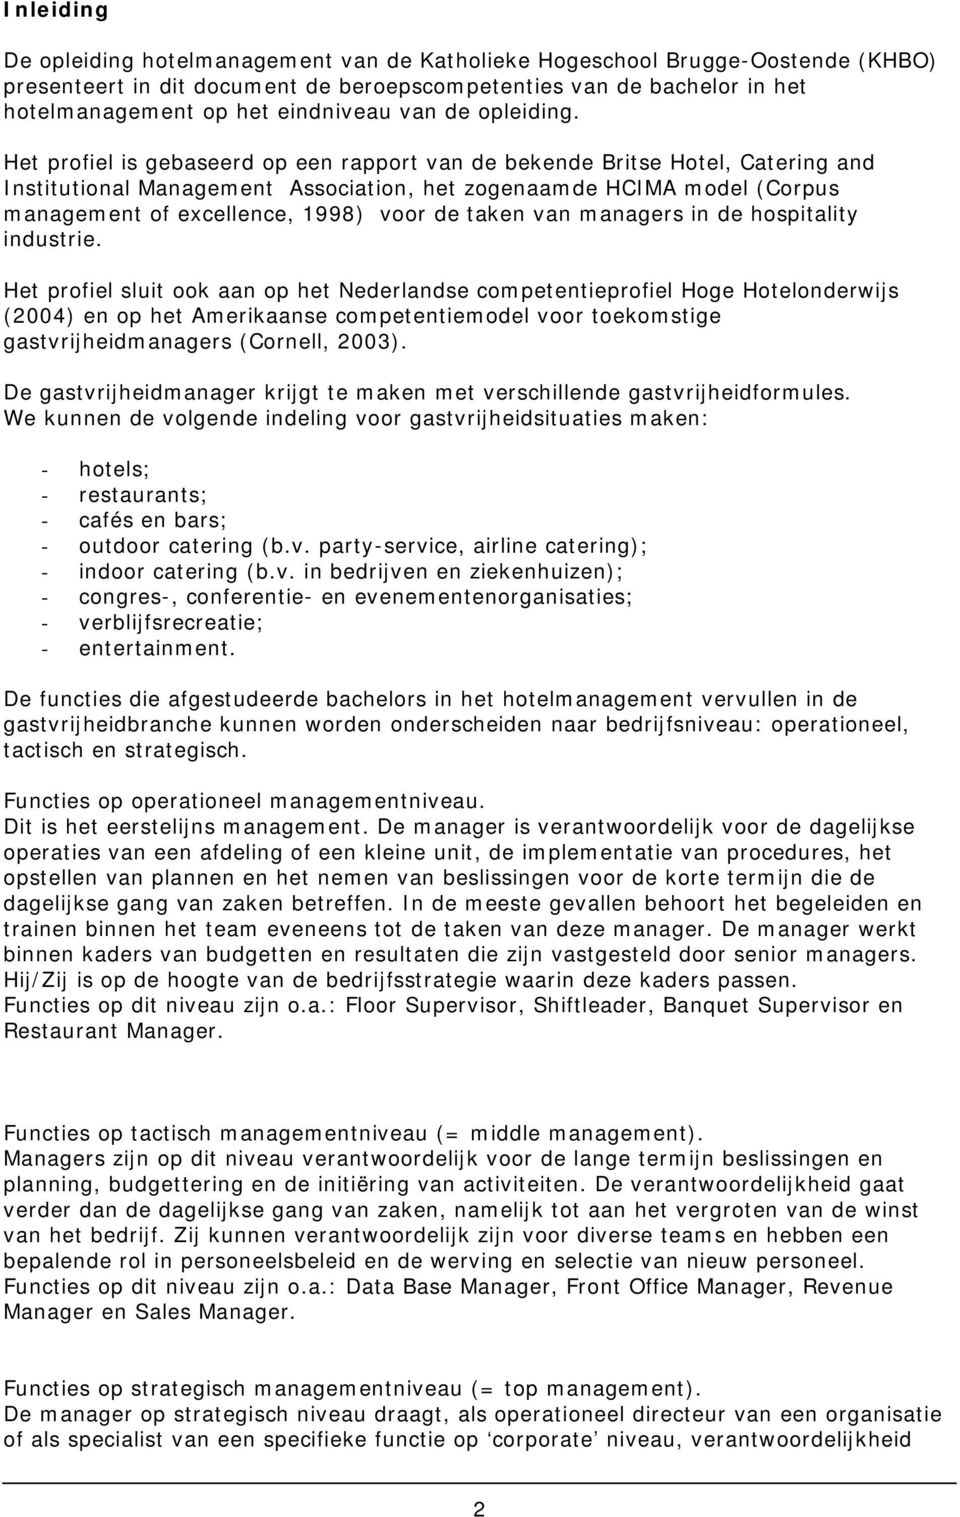 Het profiel is gebaseerd op een rapport van de bekende Britse Hotel, Catering and Institutional Management Association, het zogenaamde HCIMA model (Corpus management of excellence, 1998) voor de